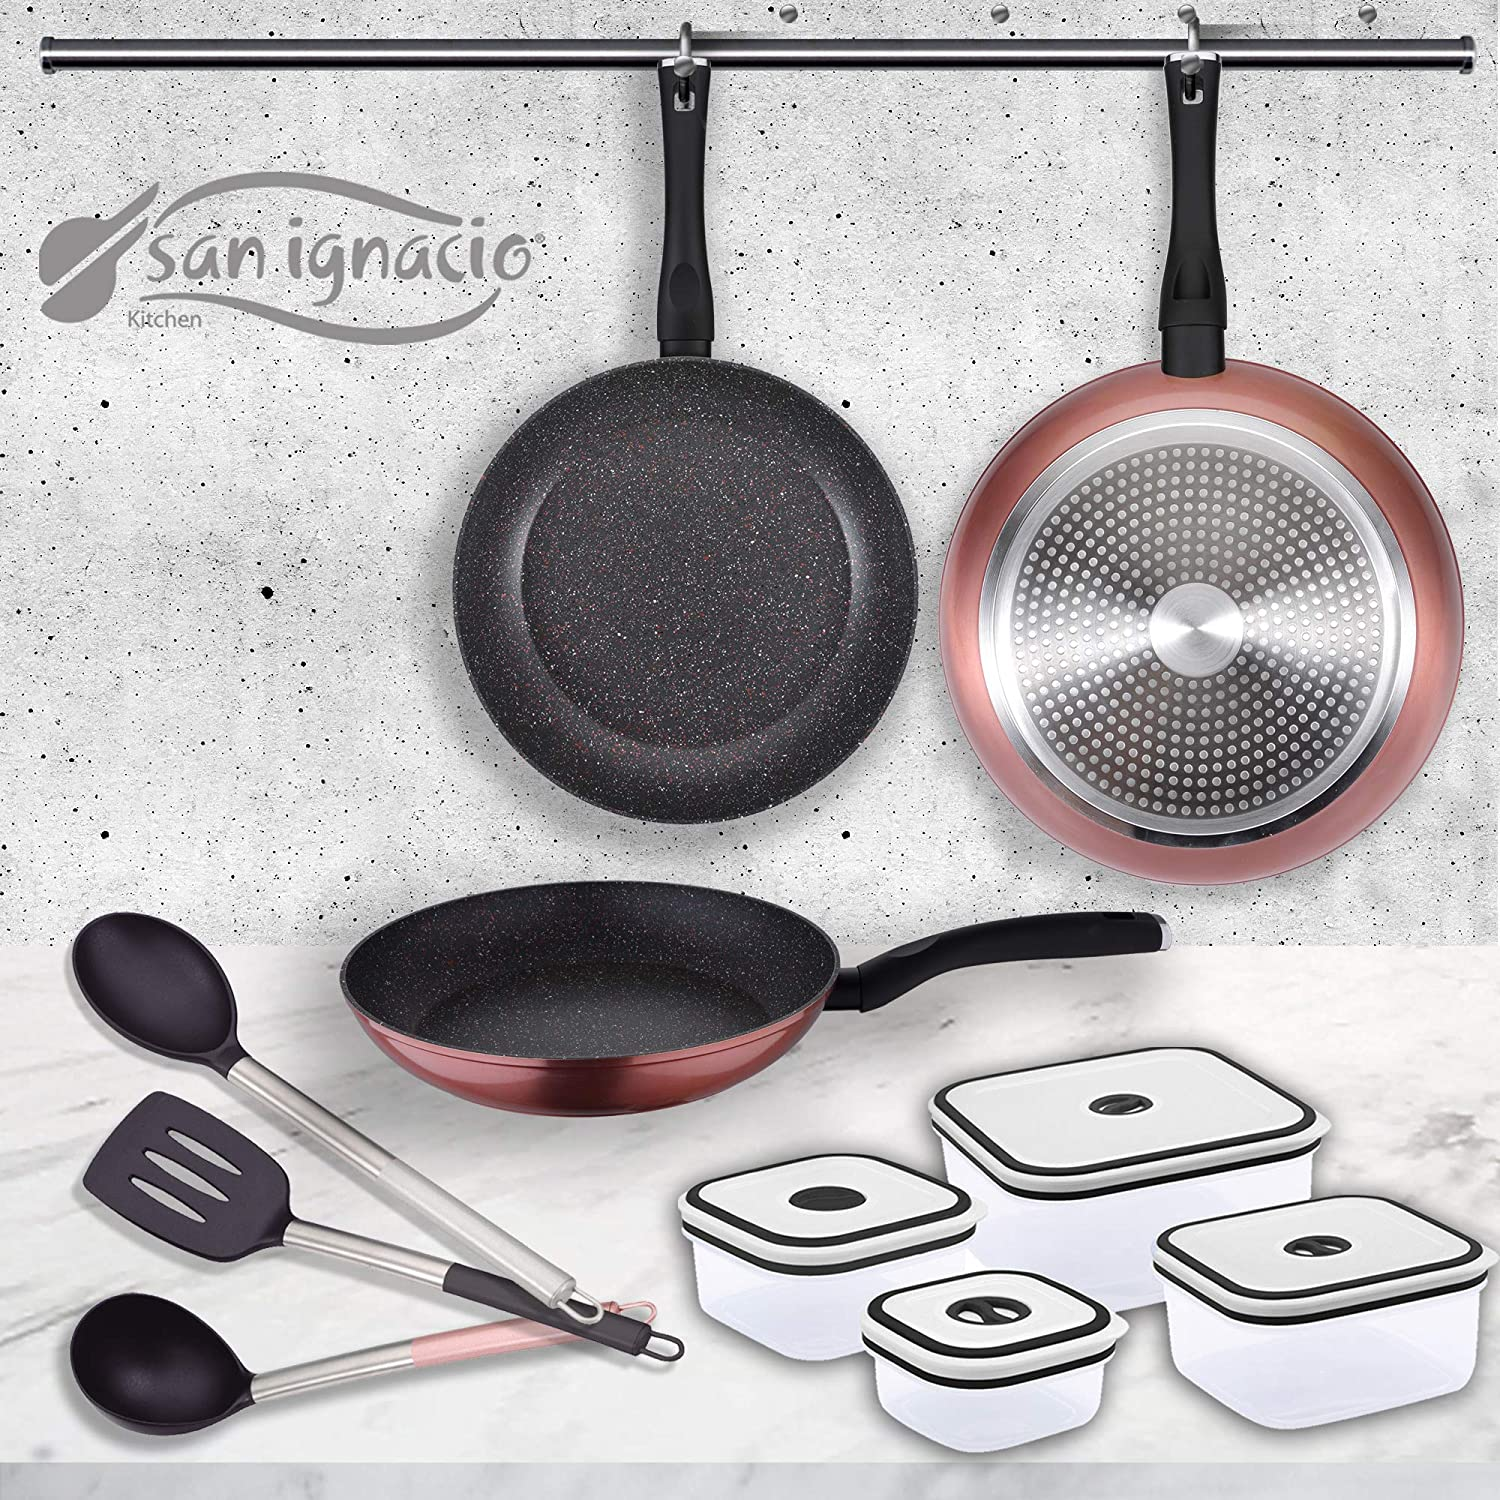 Amazon.com: San Ignacio PK1411 Venus Set of 3 Frying Pans + 4 Lunch ...